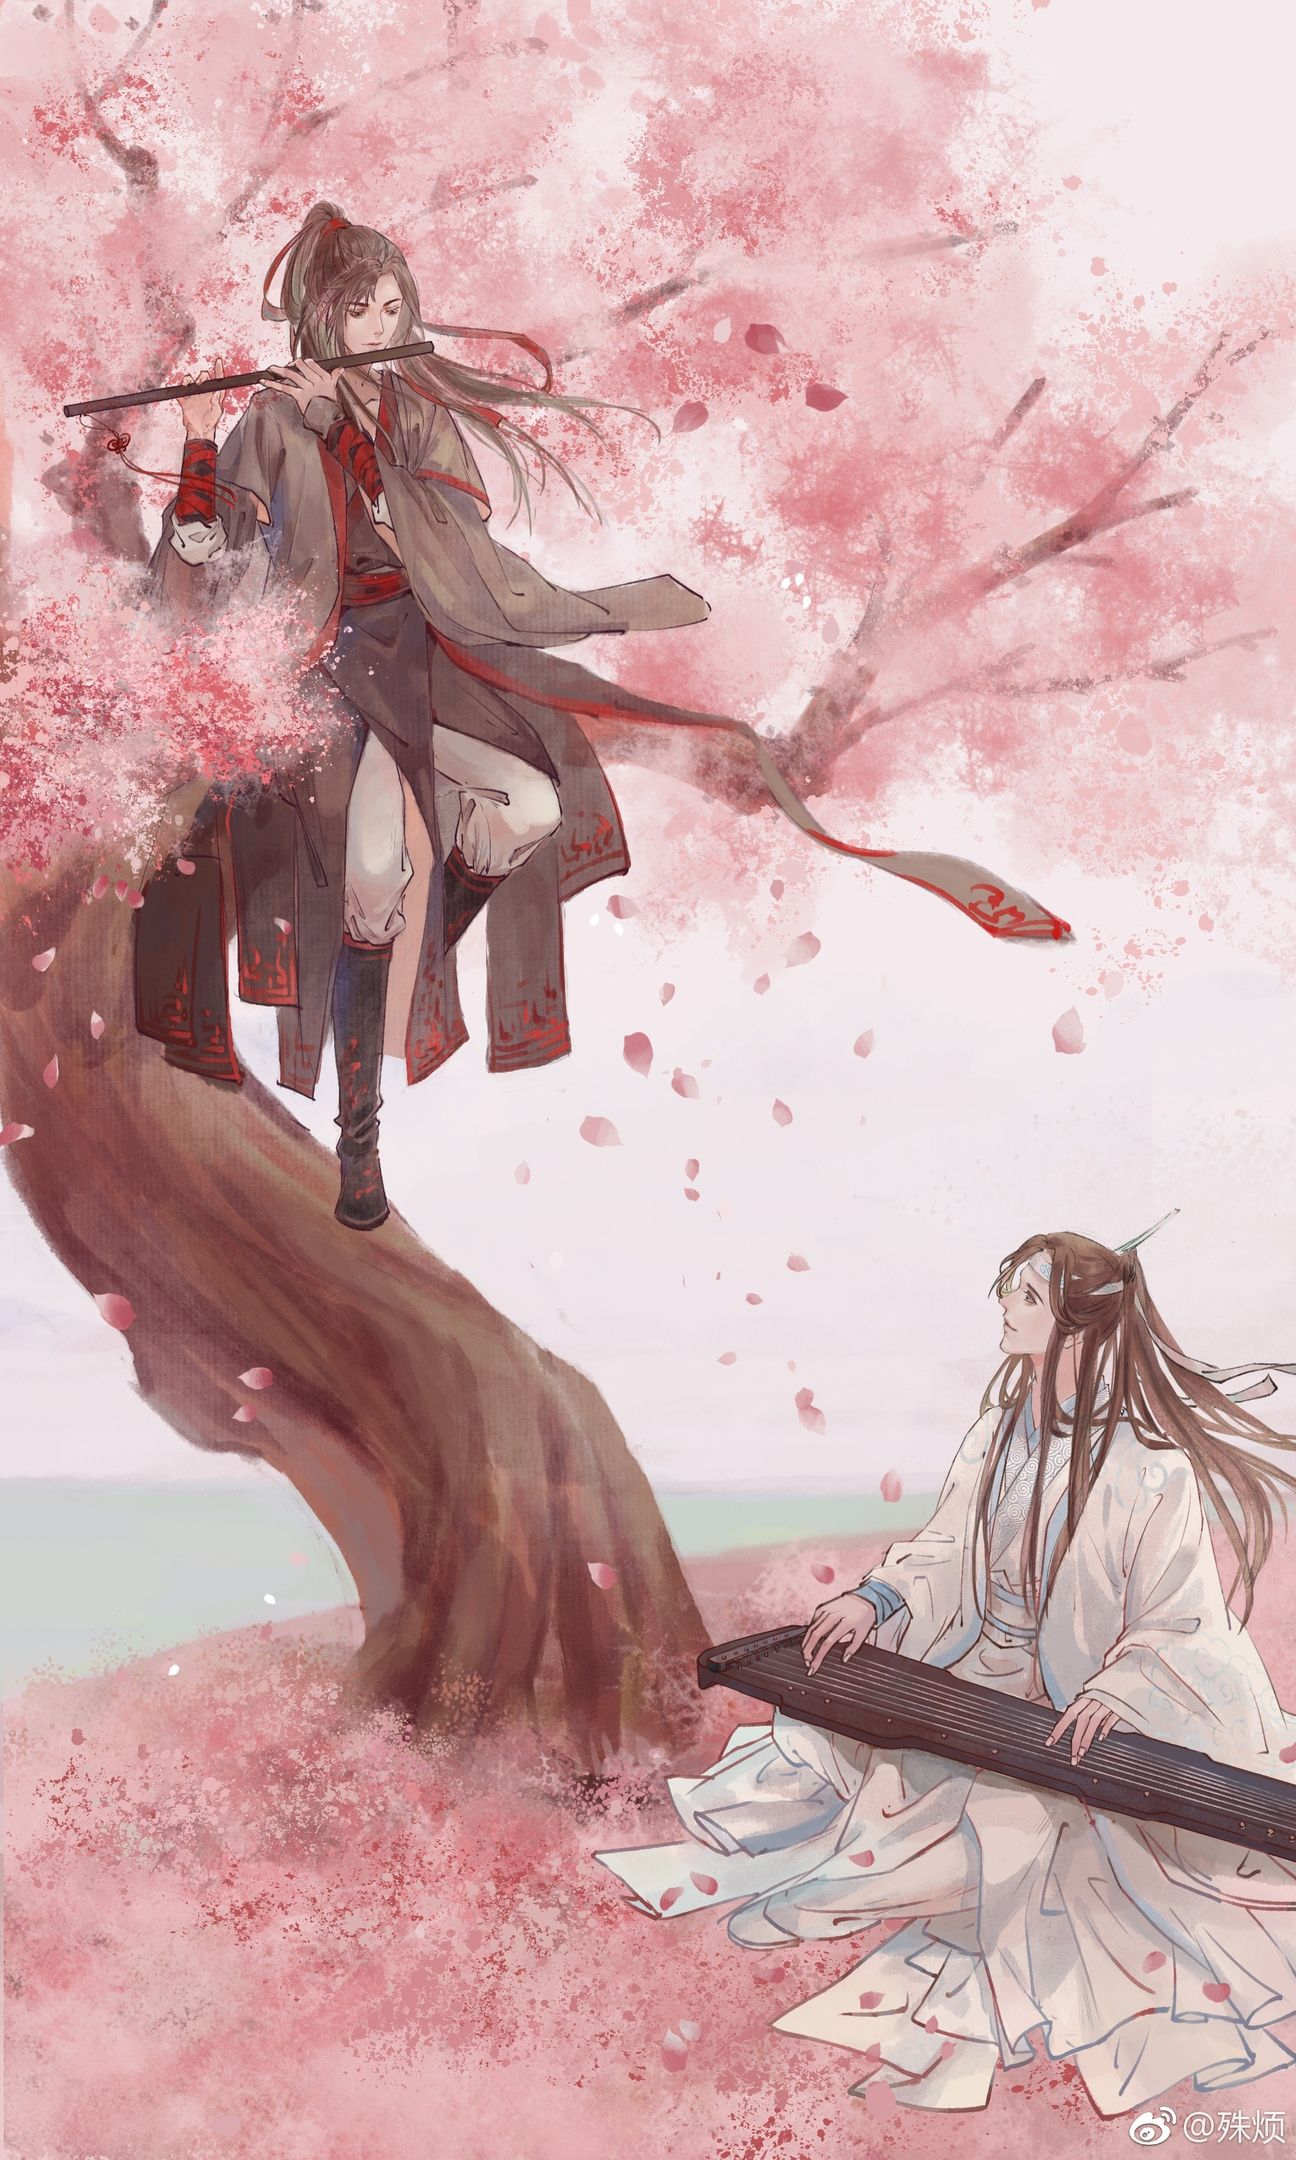 Pin by ꧁𝑊𝑒𝑖𝑌𝑖𝑛𝑔꧂ on Founder of Diabolism (魔道祖师) Anime